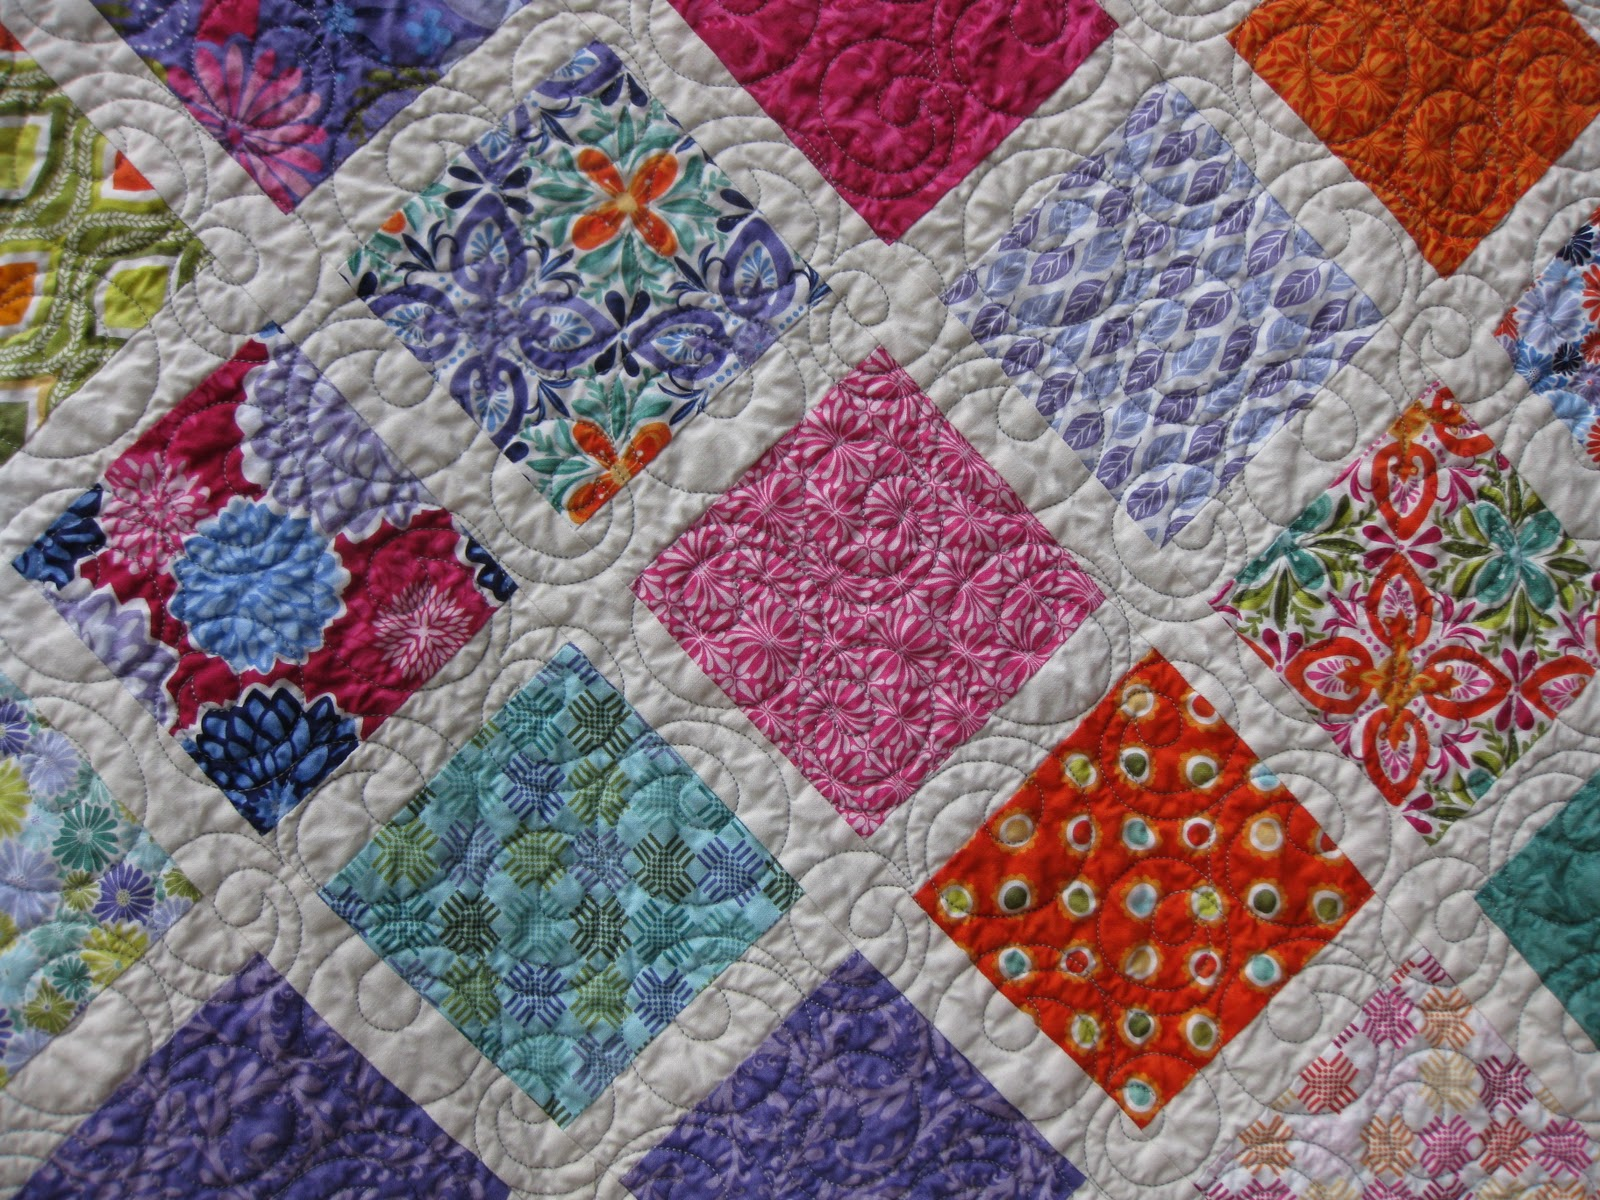 Millie s Quilting: Two Charm Square Quilts